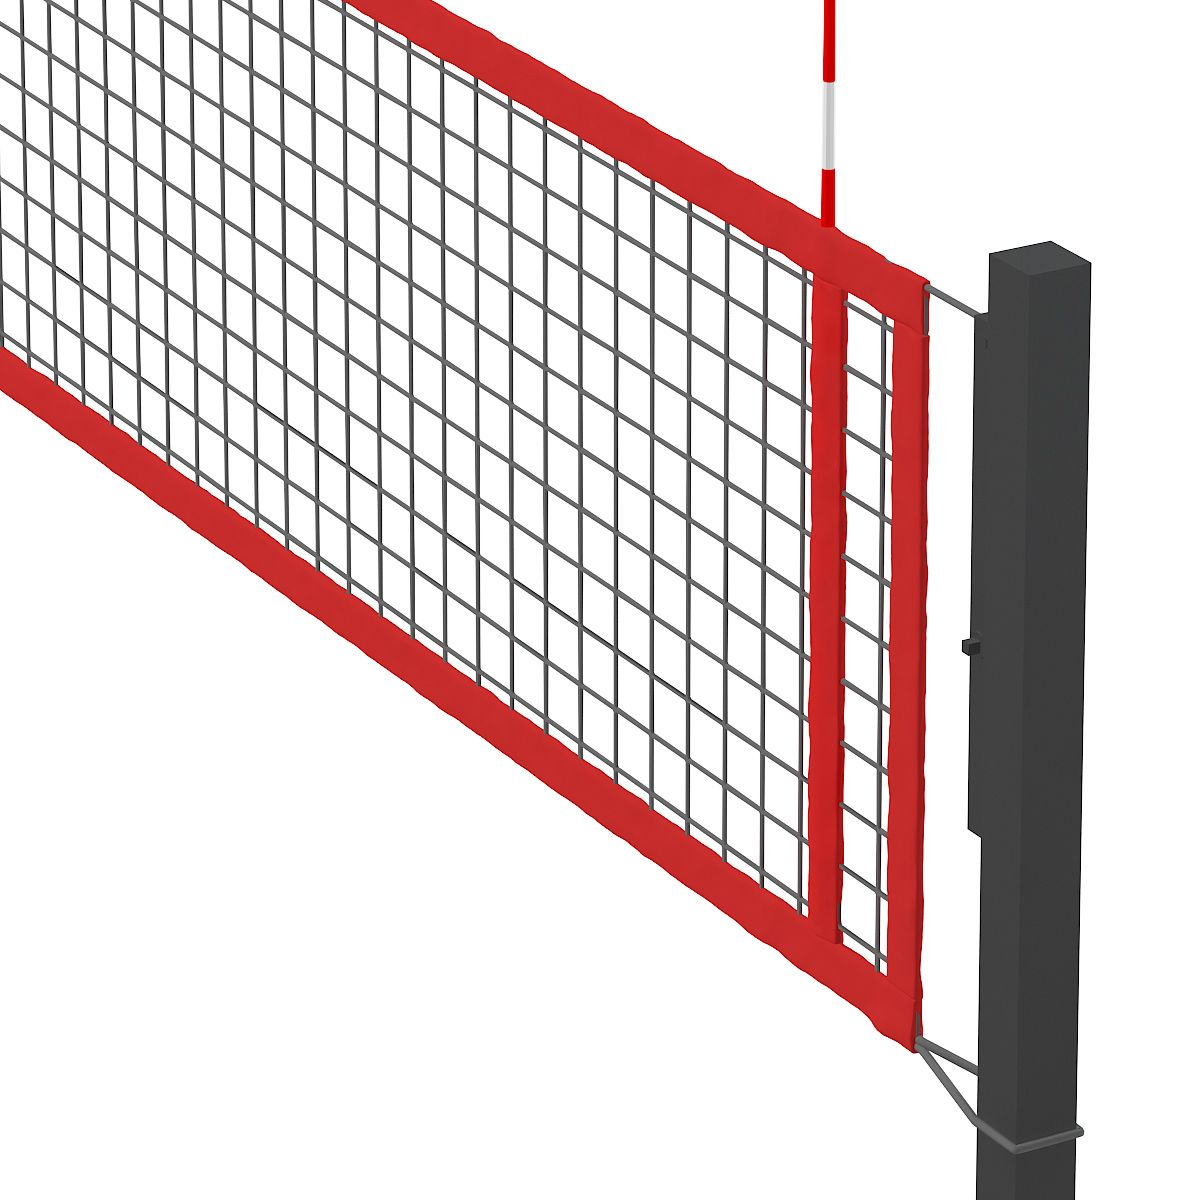 Volleyball Net With Images Volleyball Net Volleyball Net